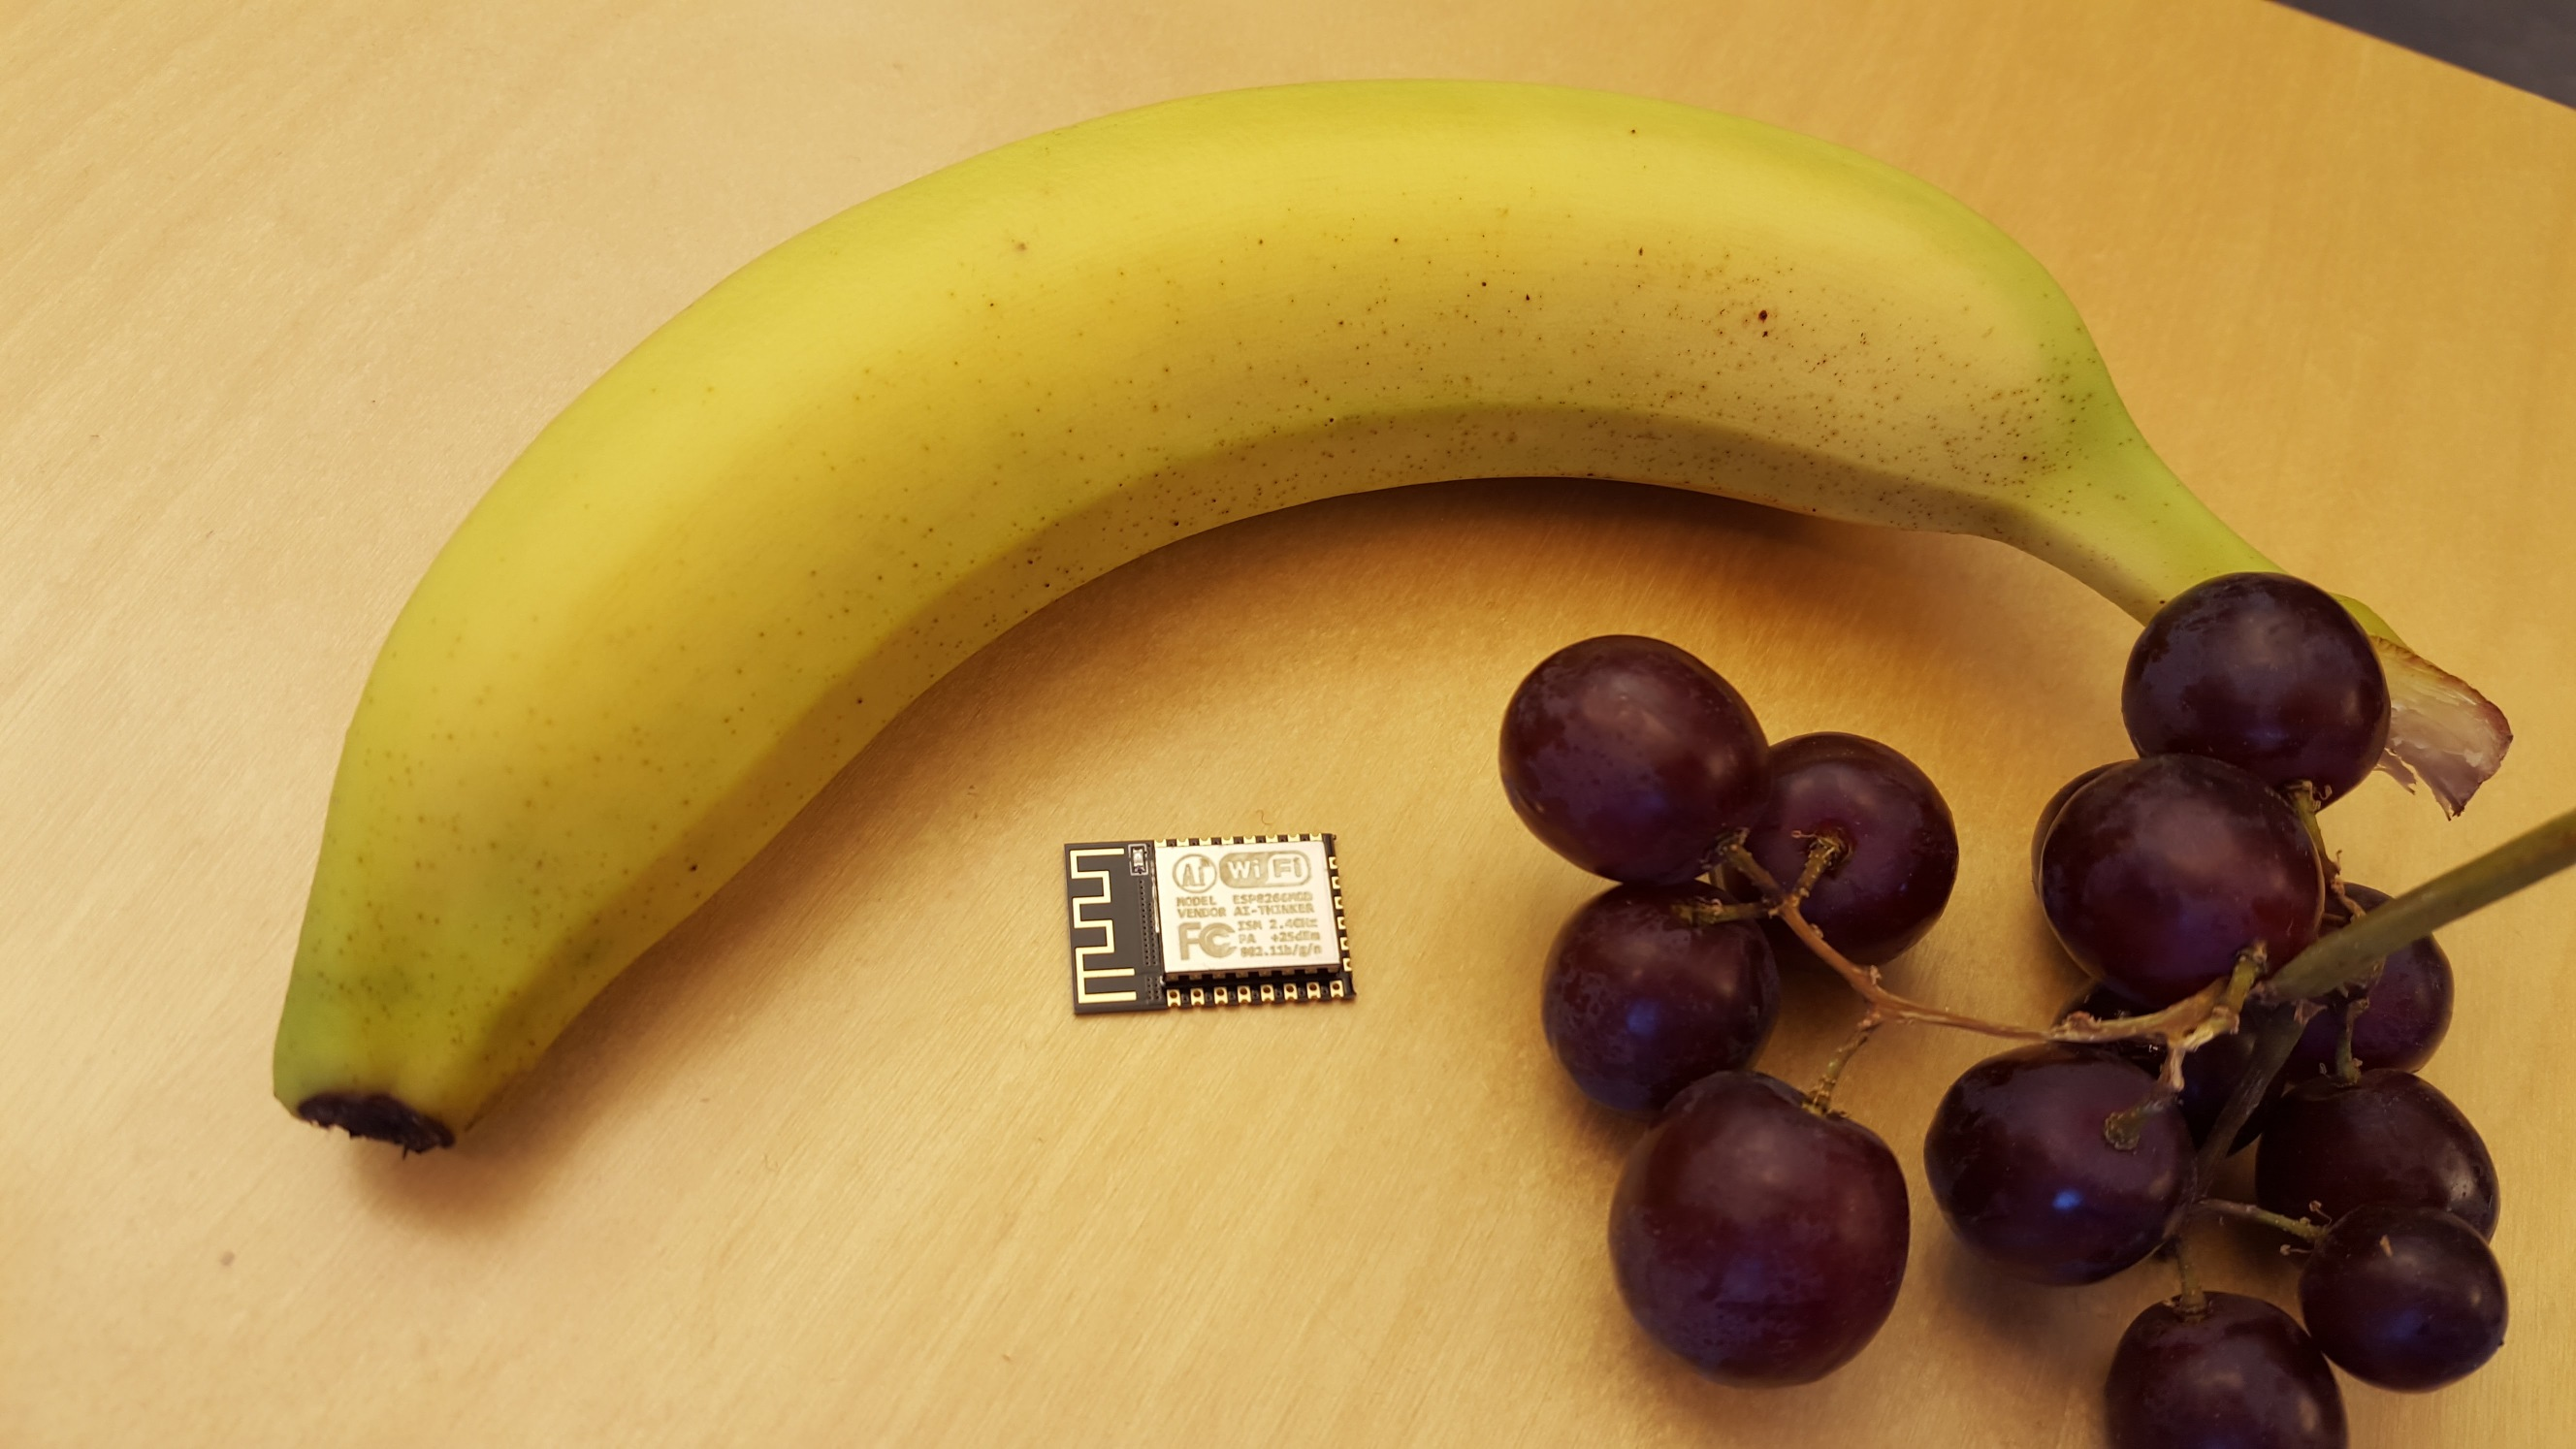 ESP-12E and a banana for scale